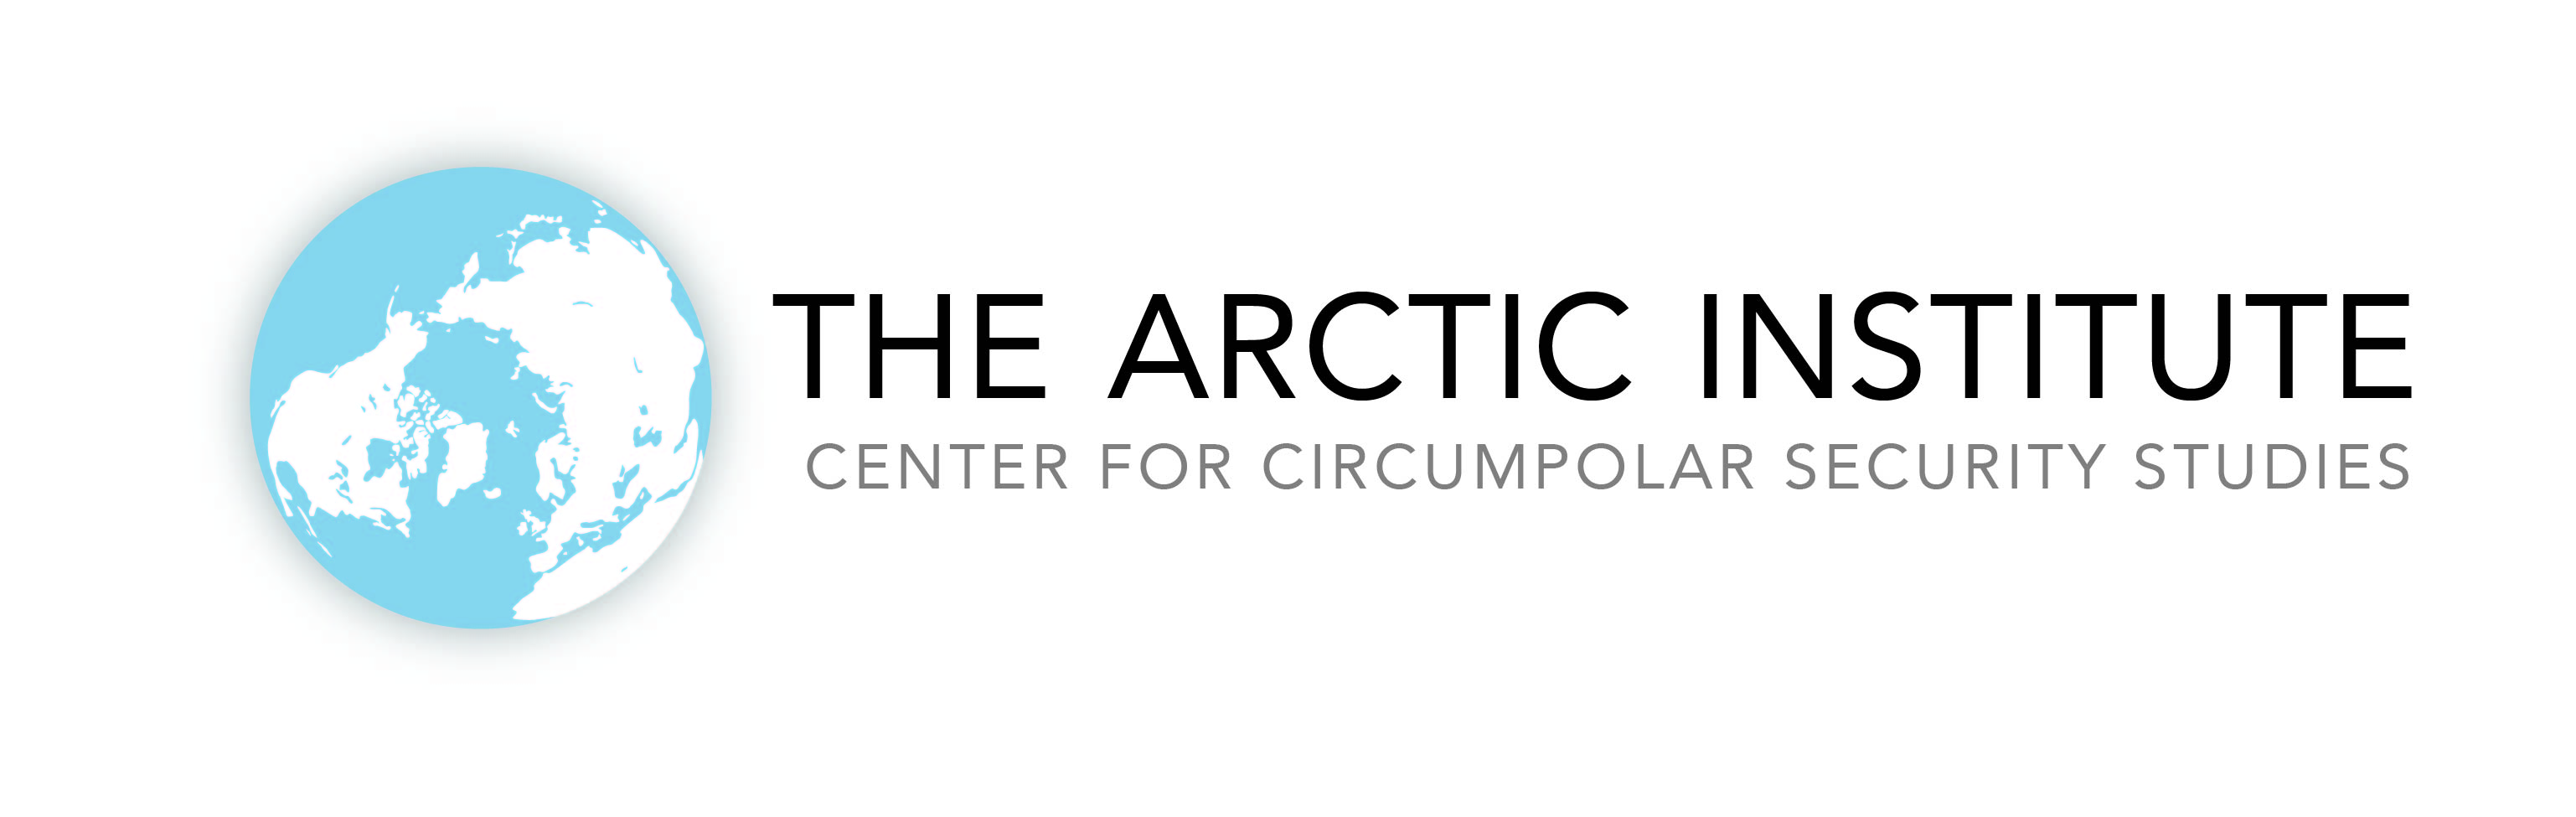 The Arctic Institute Logo Rectangle